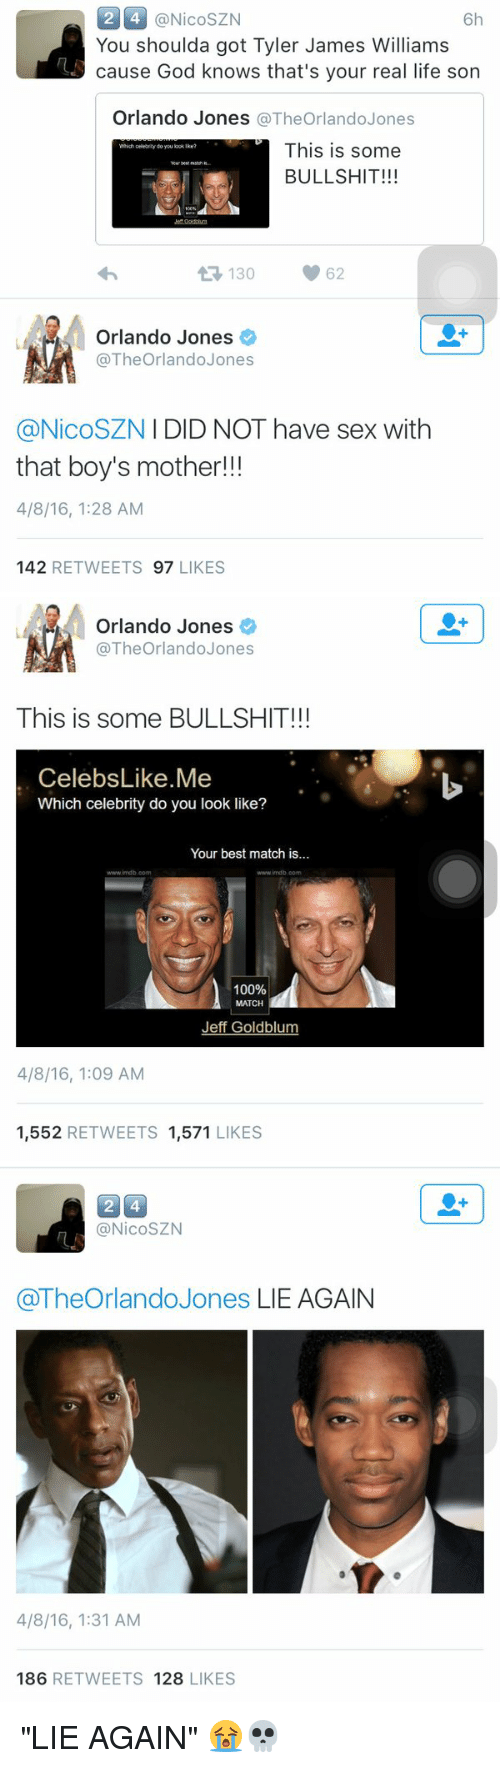 "Jeff Goldblums: 2 4 @Nico SZN  6h  You shoulda got Tyler James Williams  cause God knows that's your real life son  Orlando Jones  The Orlando Jones  This is some  BULLSHIT!!!  t 130  62  Orlando Jones  The Orlando Jones  I DID NOT have sex with  @Nico SZN  that boy's mother!!!  4/8/16, 1:28 AM  142  RETWEETS 97  LIKES   Orlando Jones  The Orlando Jones  This is some BULLSHIT!!!  Celebs Like Me  Which celebrity do you look like?  Your best match is.  www indb com  100%  Jeff Goldblum  4/8/16, 1:09 AM  1.552  RETWEETS  1.571  LIKES   24  (a NicoSZN  @The Orlando Jones LIE AGAIN  4/8/16, 1:31 AM  186  RETWEETS 128  LIKES ""LIE AGAIN"" 😭💀"